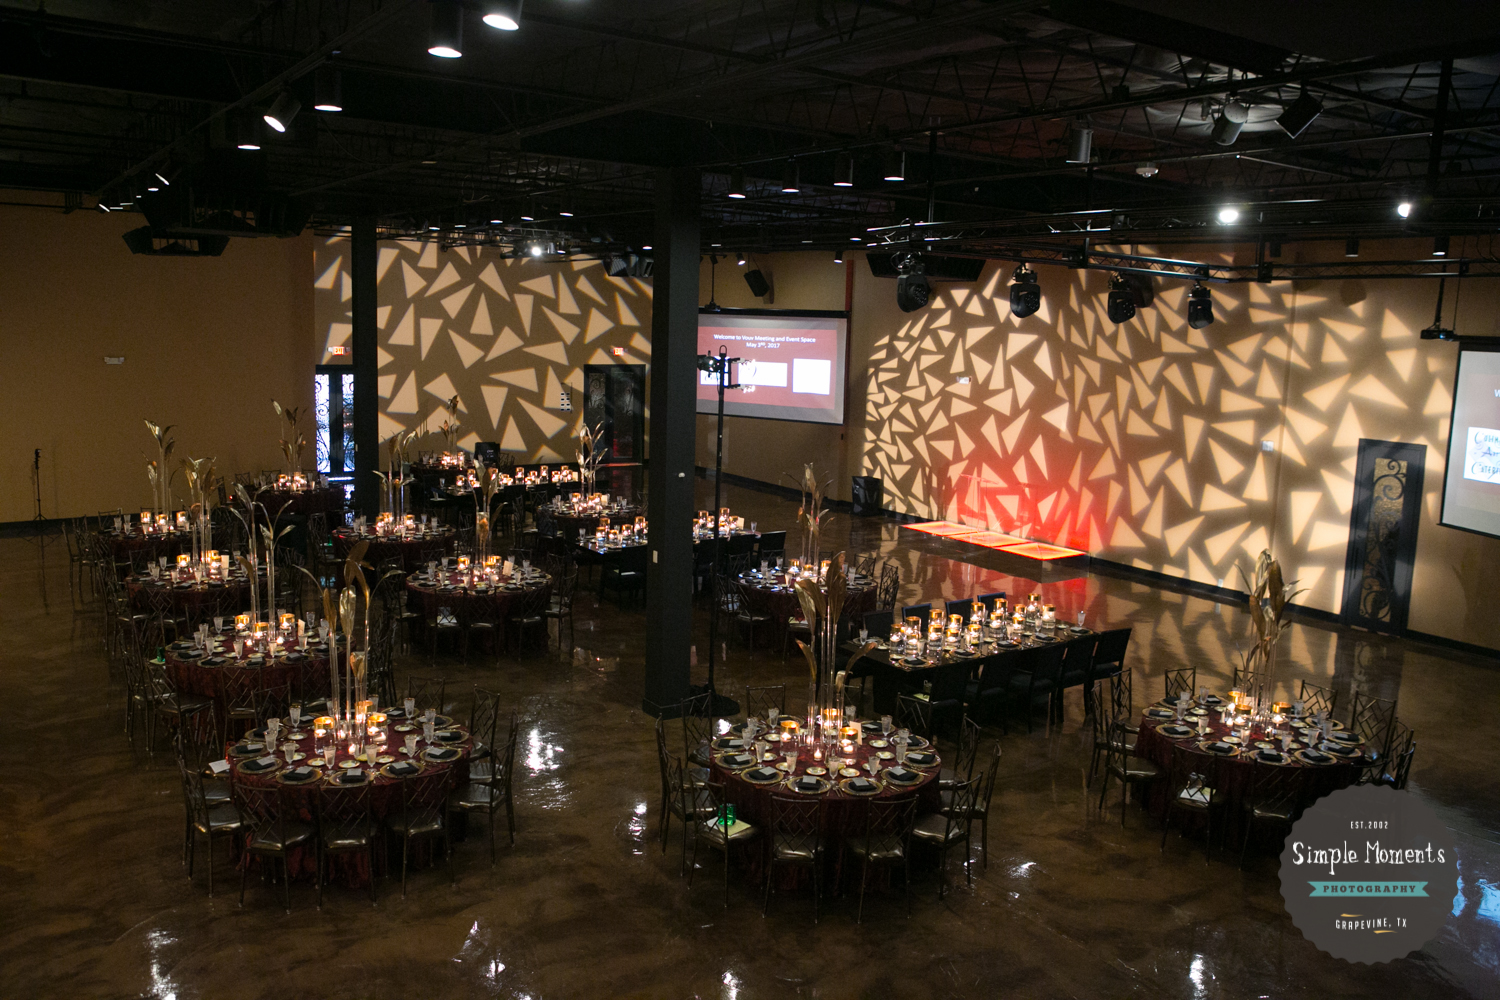 Vouv Meeting & Event Space